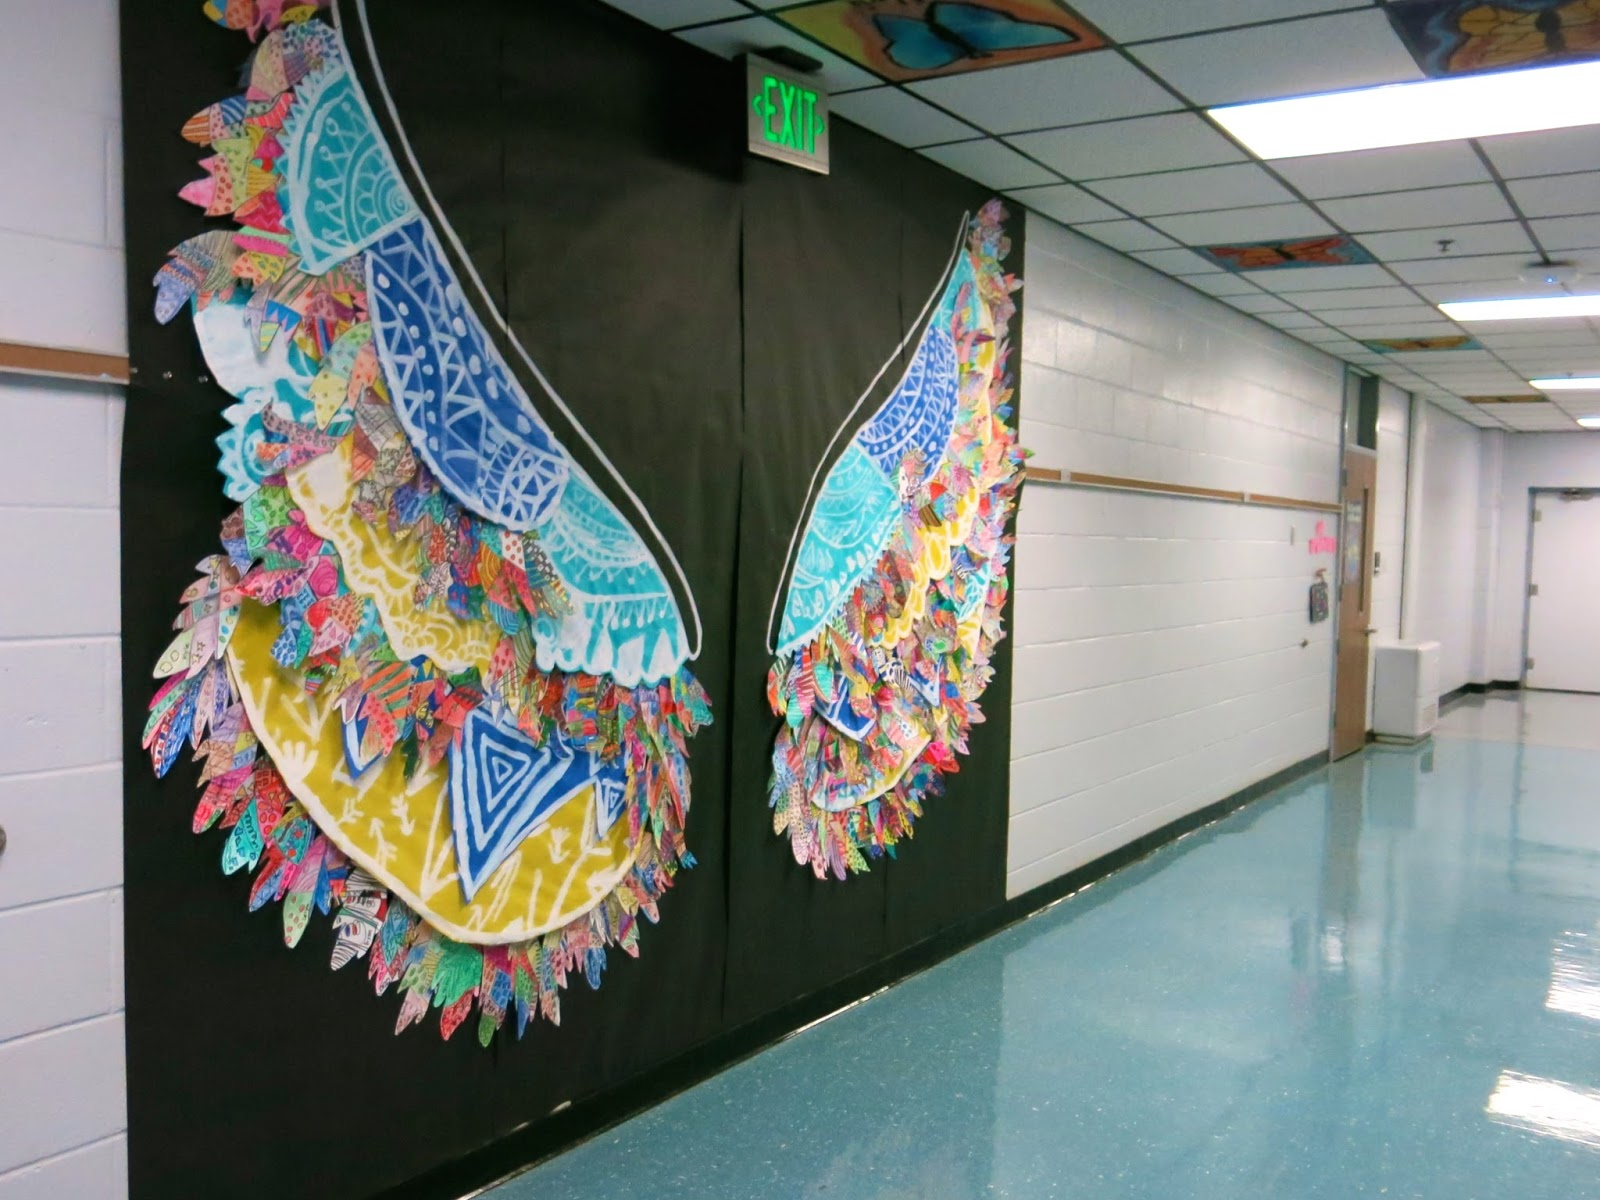 Collaborative Classroom Art Project : Cassie stephens in the art room kelsey montague inspired